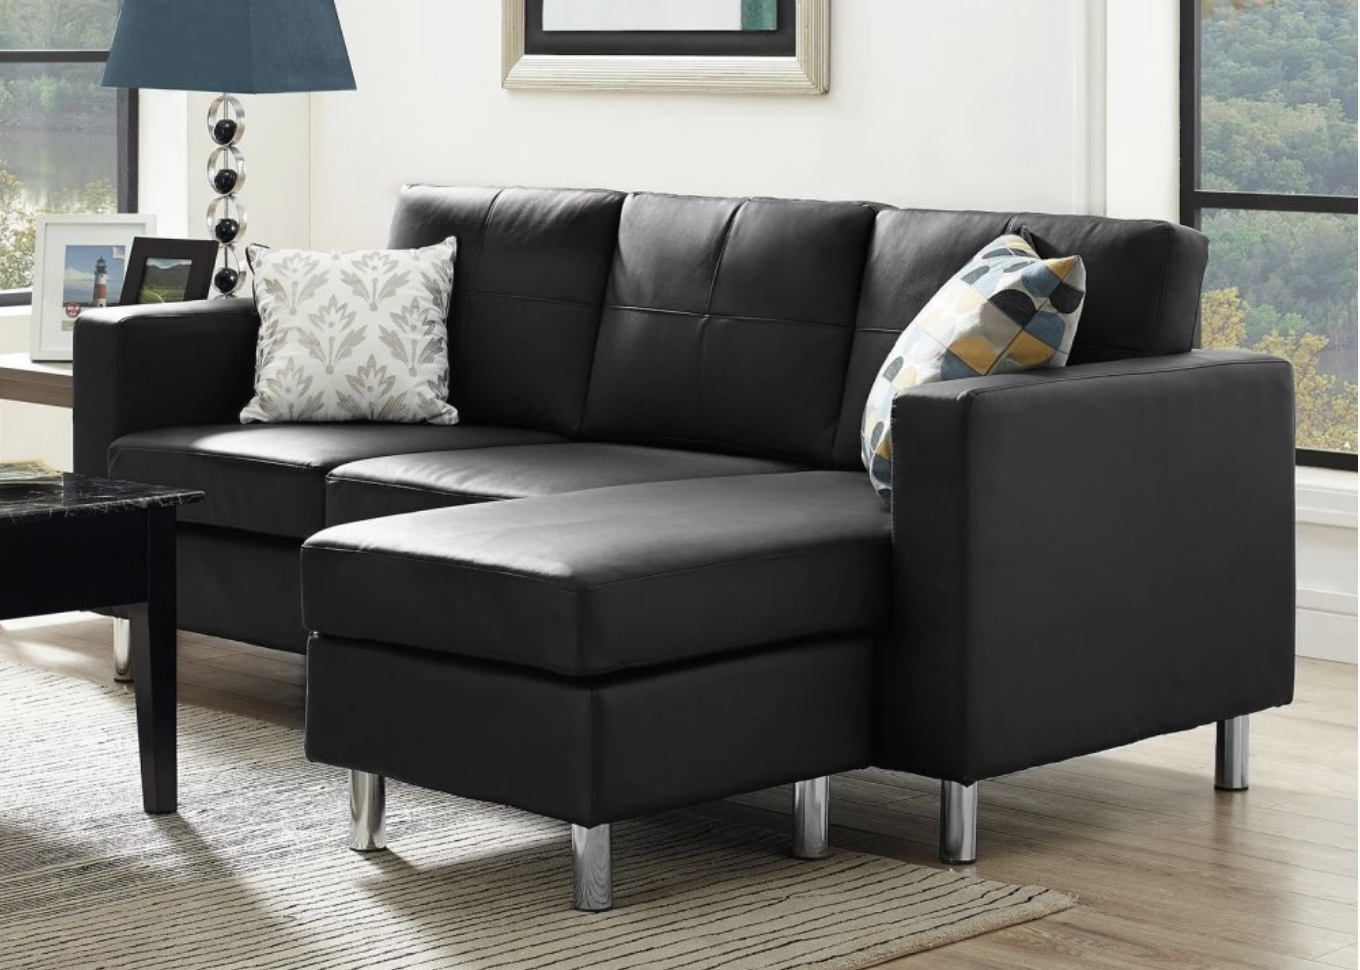 Recent 100X100 Sectional Sofas In 75 Modern Sectional Sofas For Small Spaces (2018) (View 9 of 15)